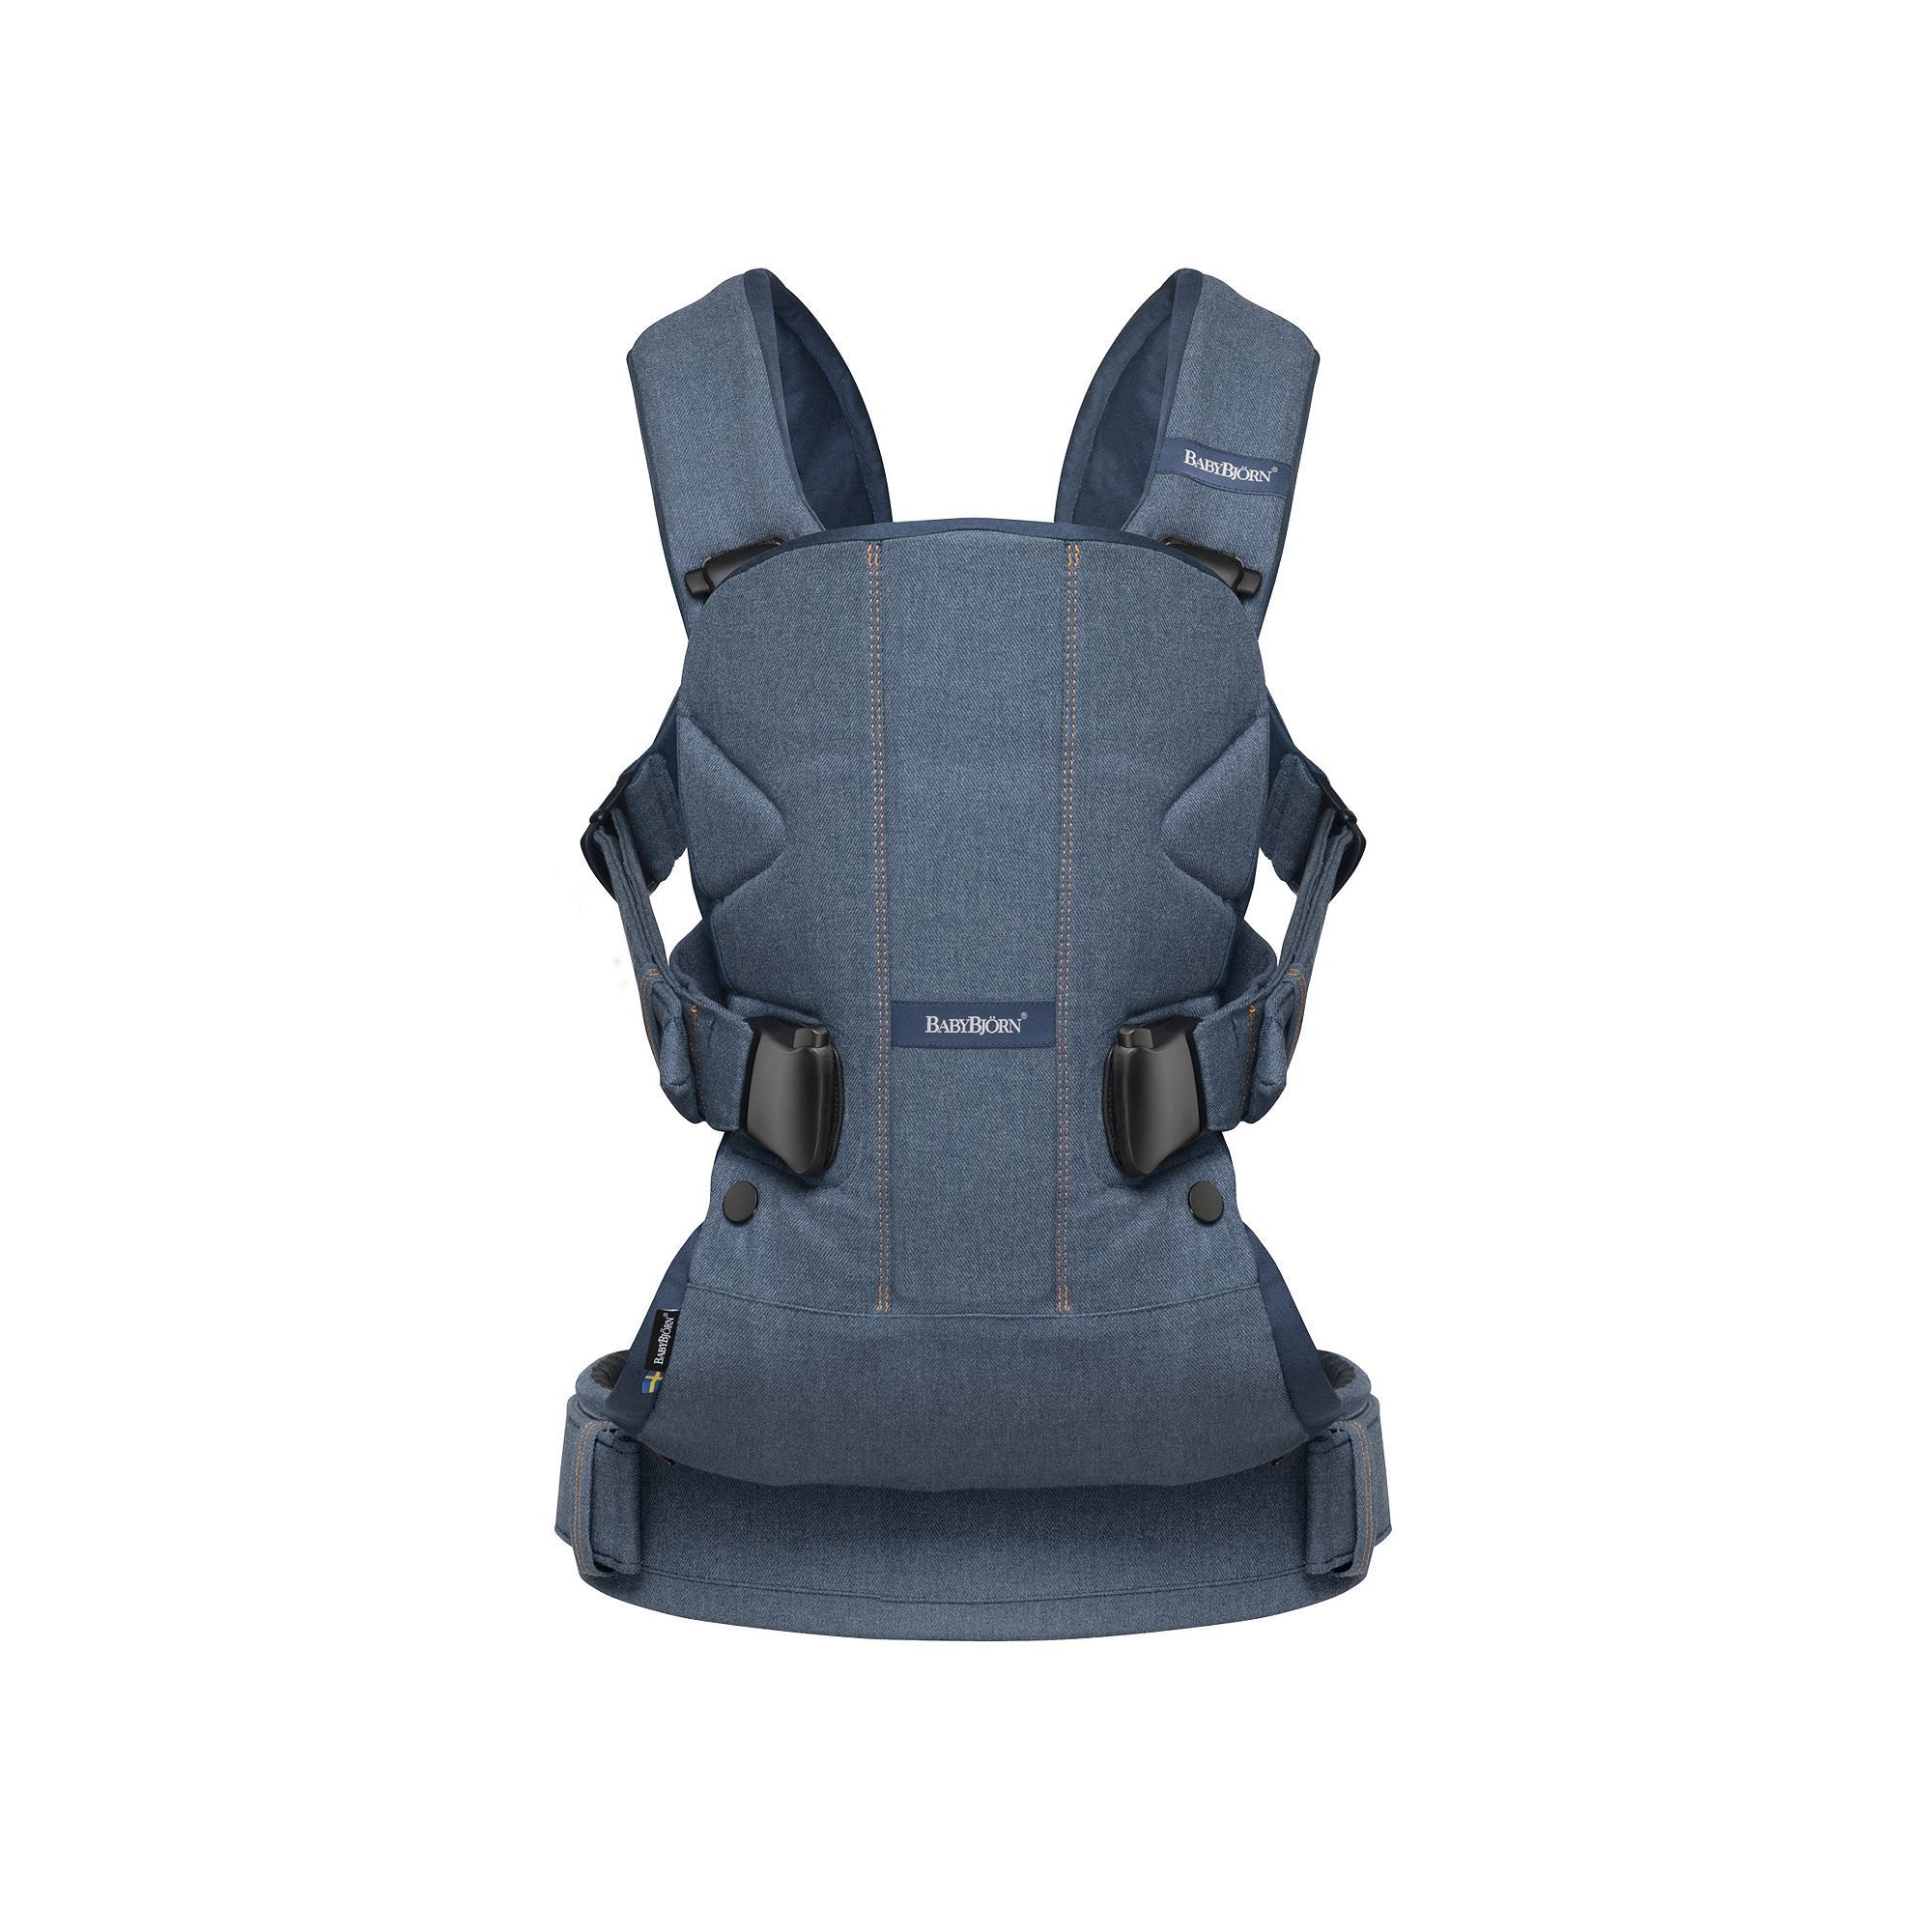 fc8531bdae3 BabyBjorn Baby Carrier One